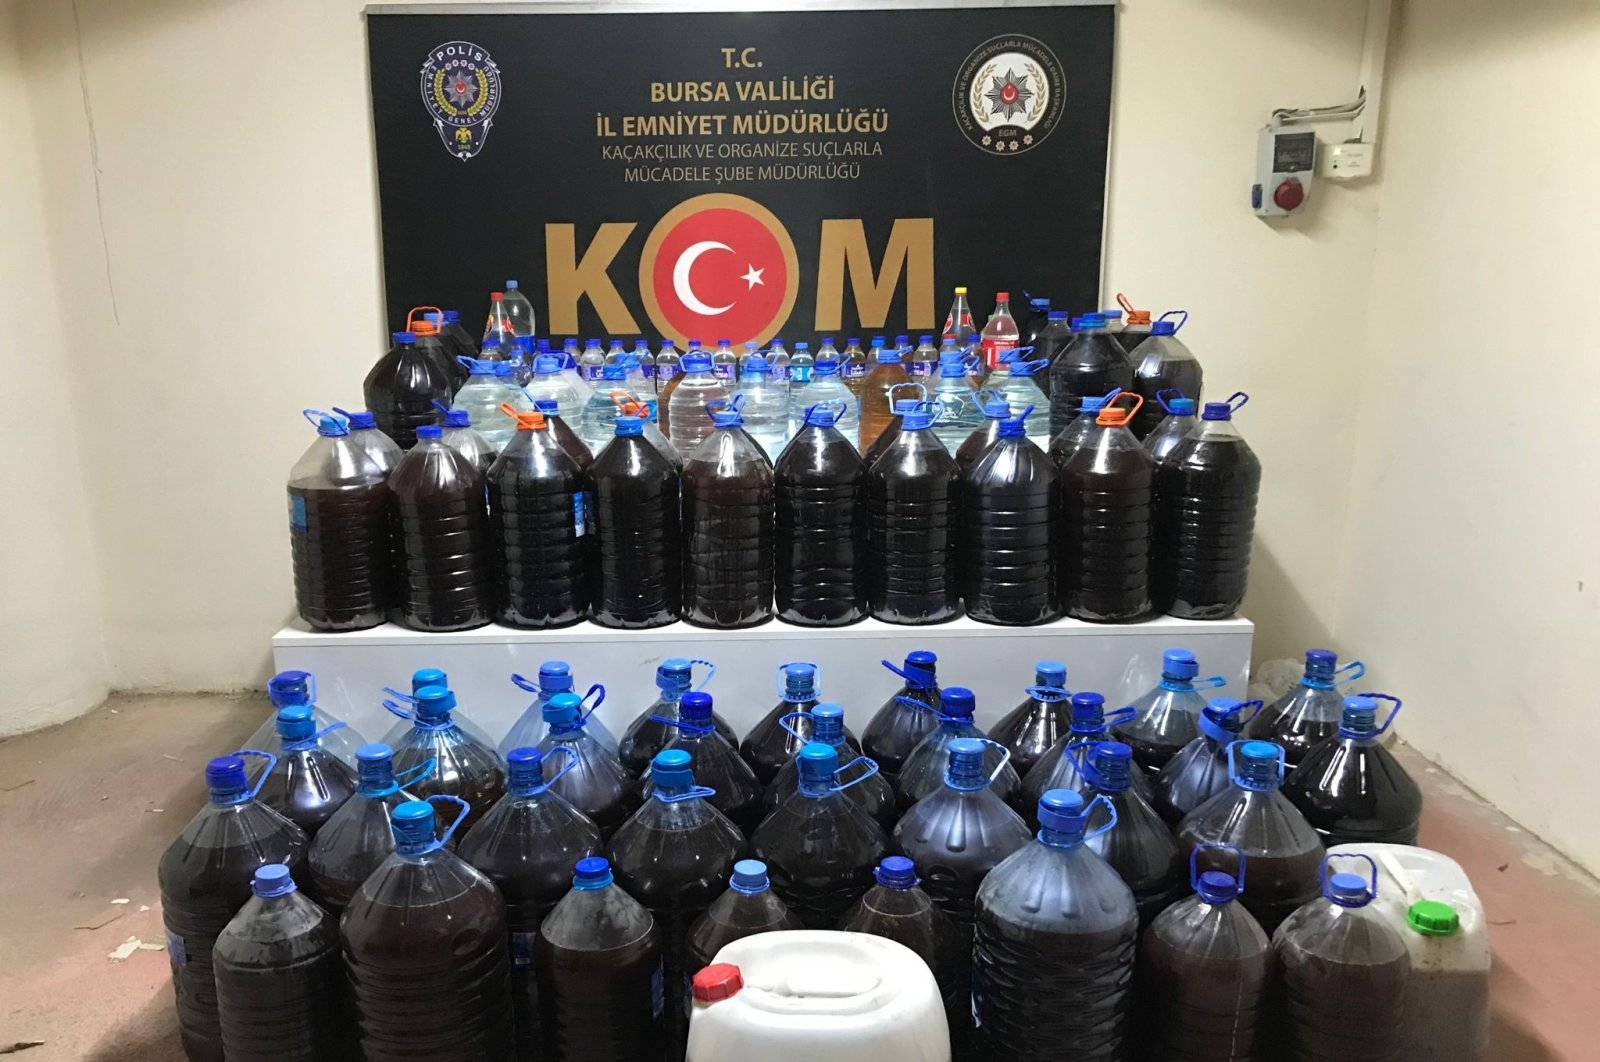 Police display bootleg alcohol seized at an operation in an illegal brewery, in Bursa, northwestern Turkey, July 1, 2021. (İHA PHOTO)